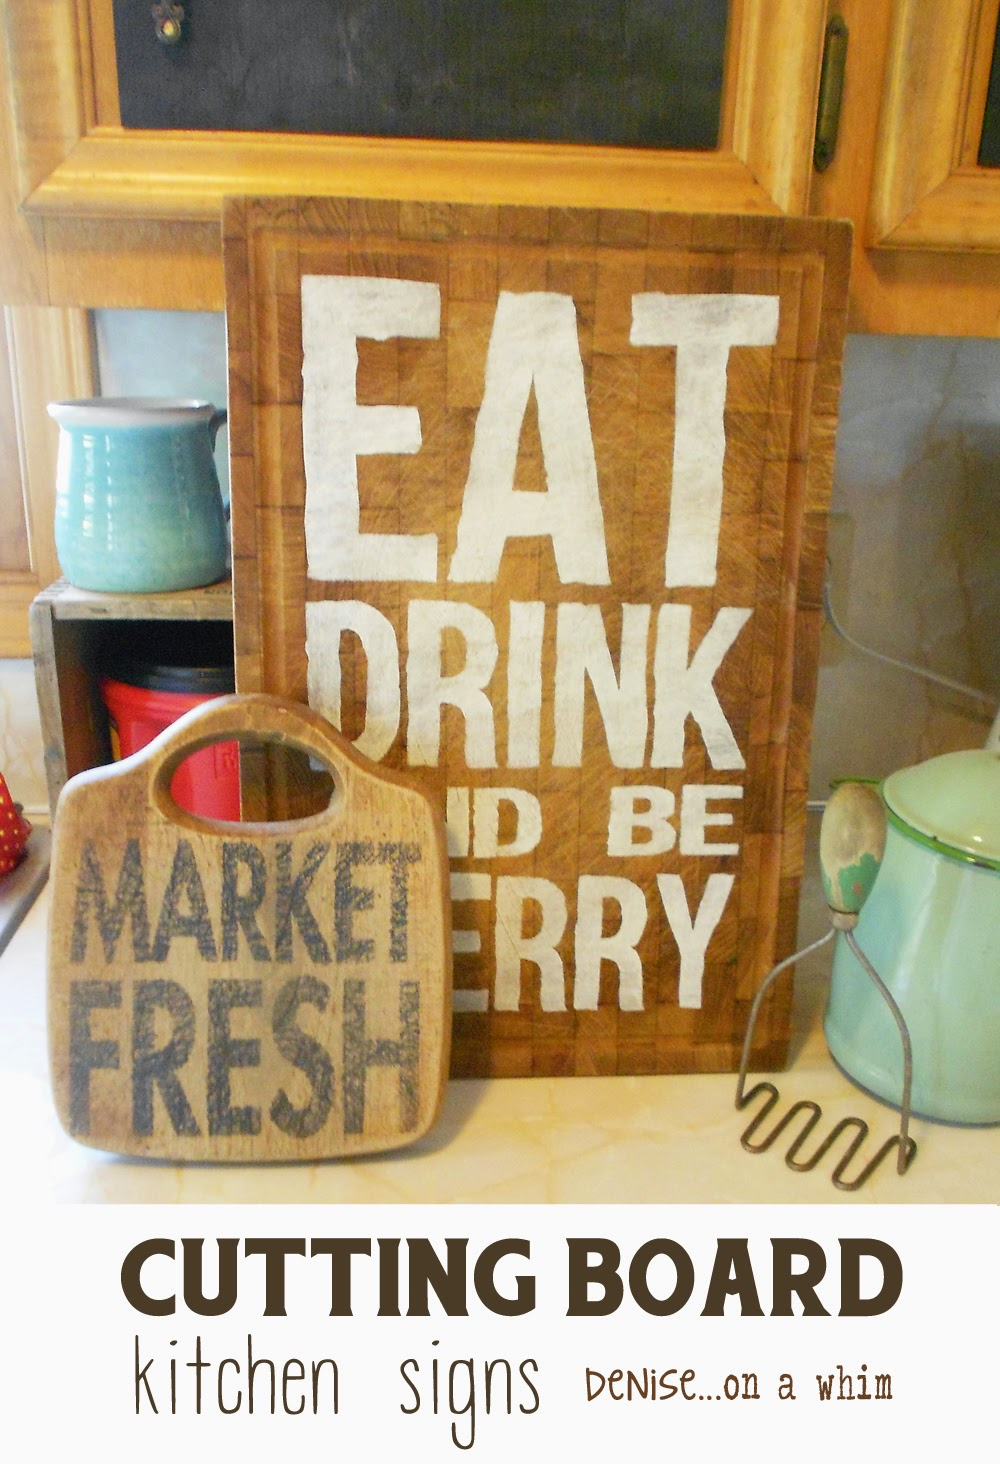 Garage Sale Cutting Boards Find New Life as Kitchen Signs via Denise on a Whim.